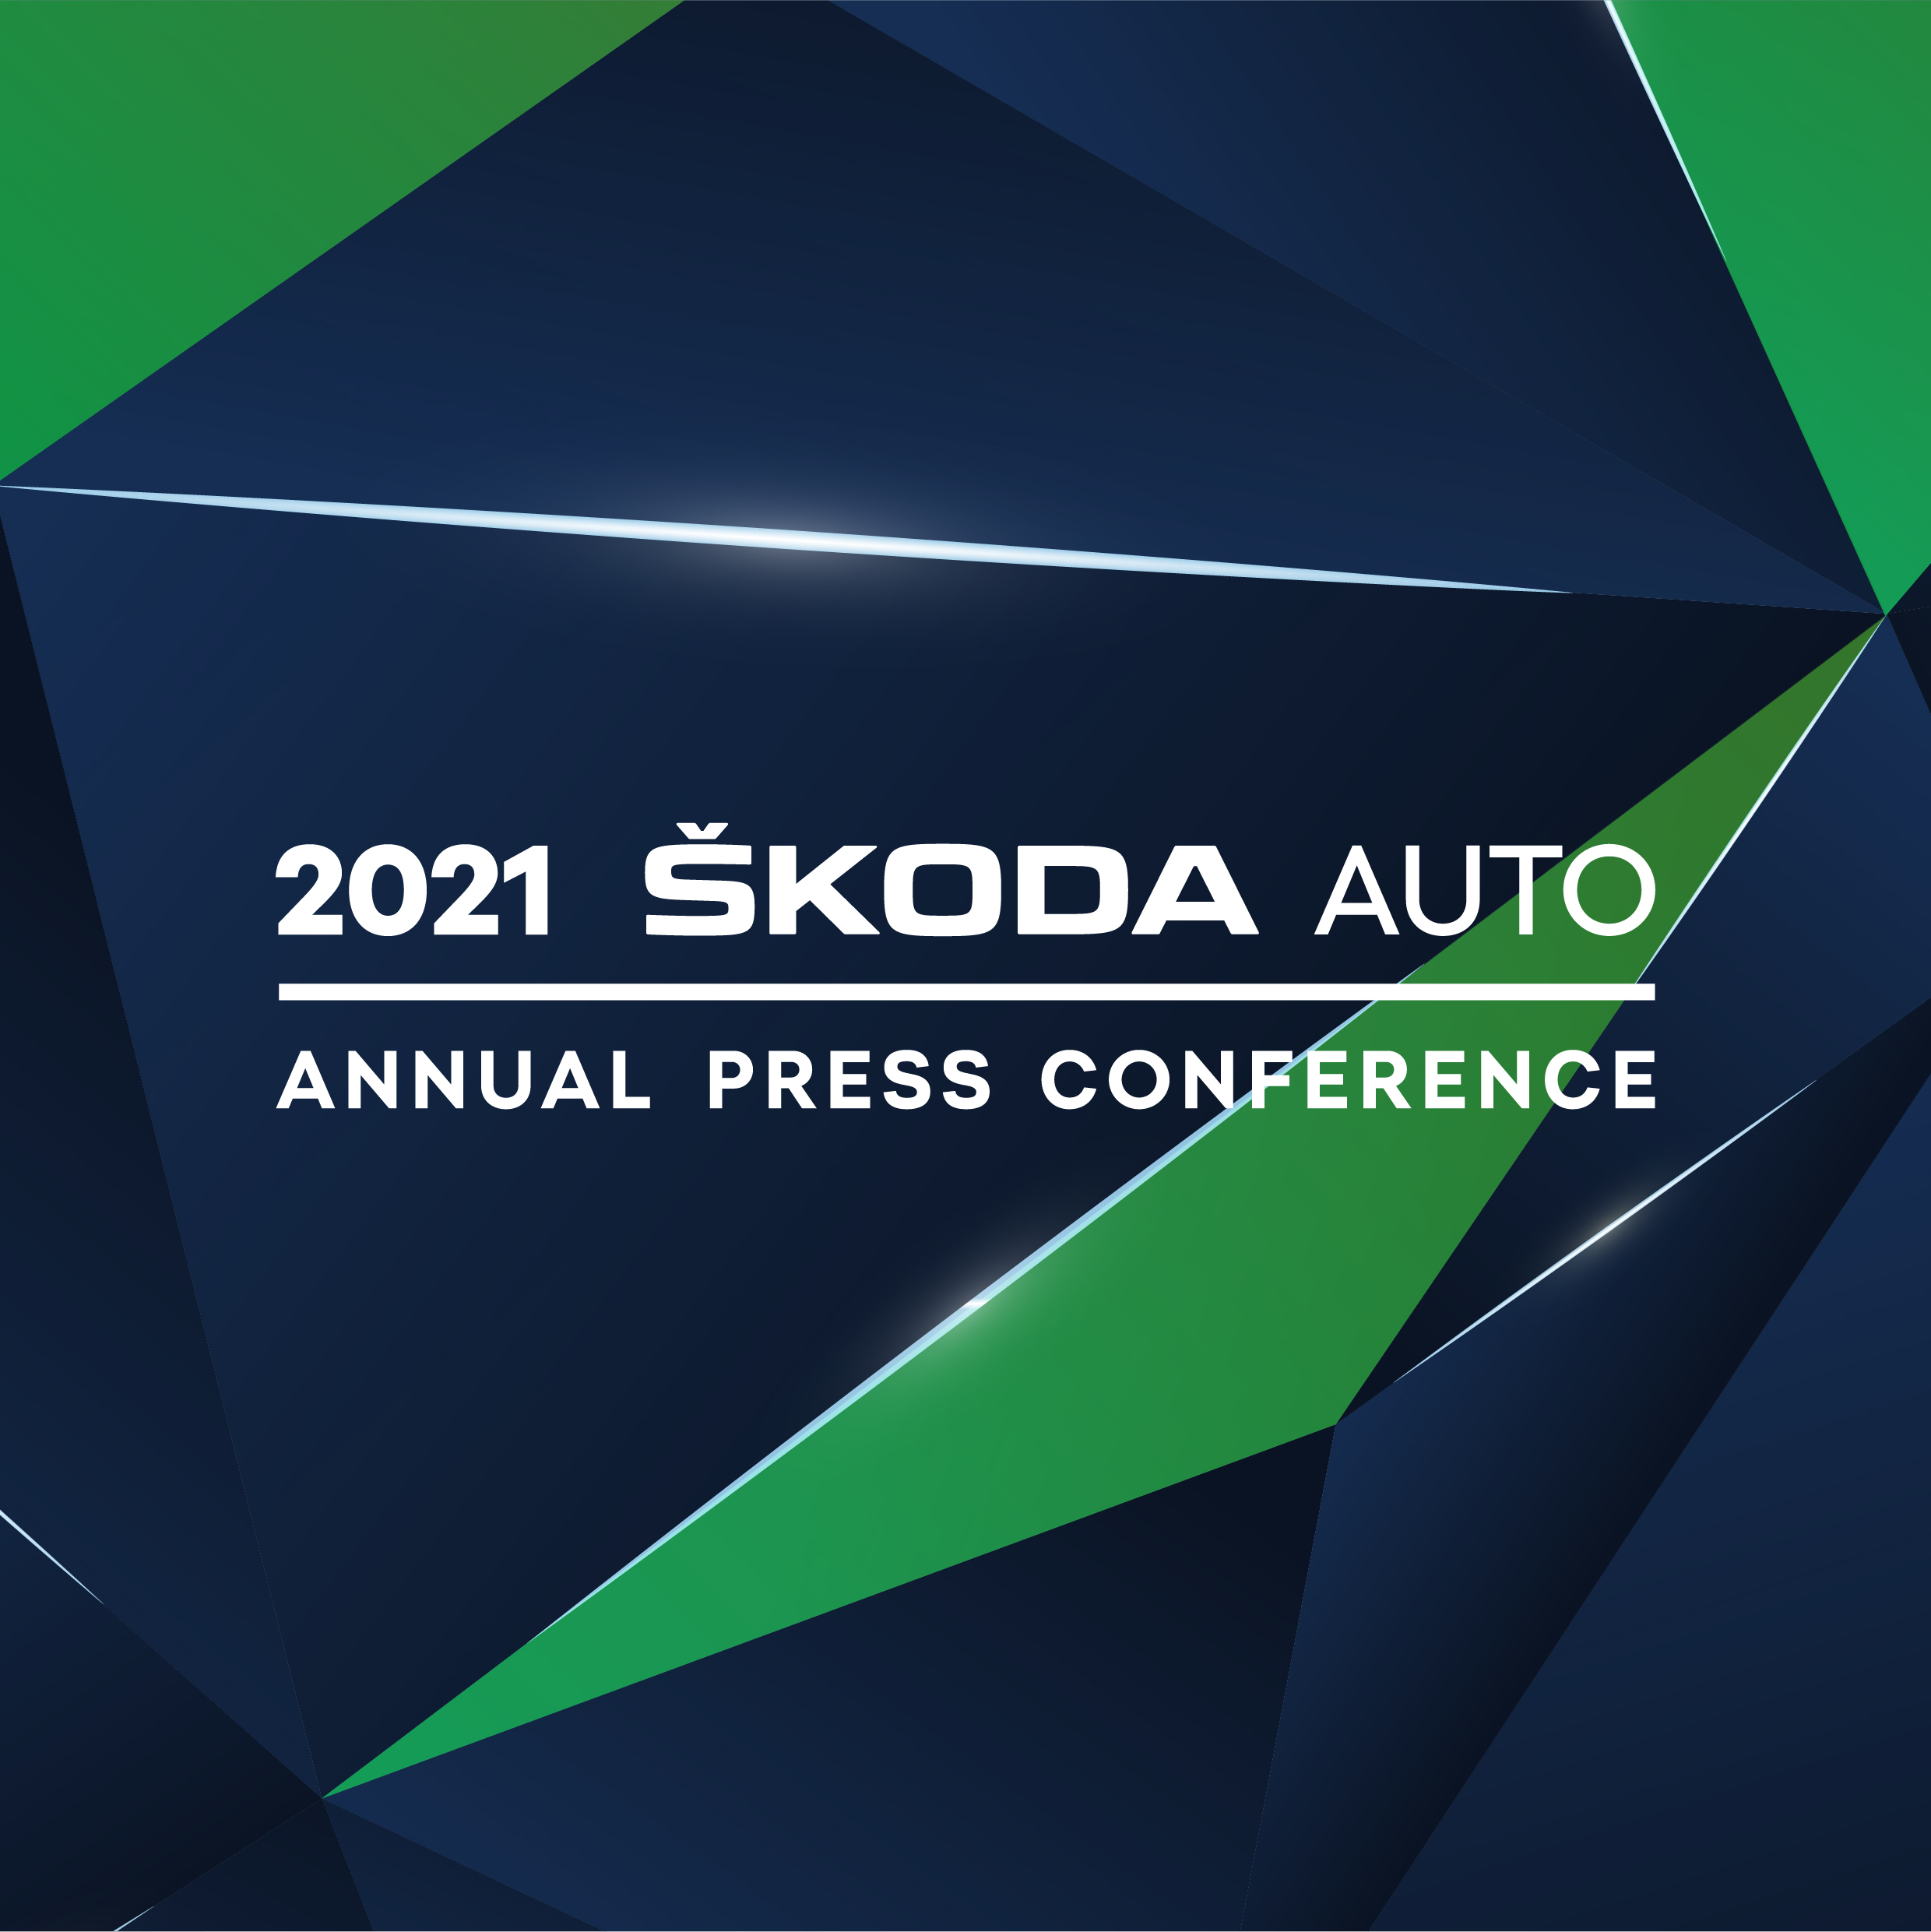 SKODA AUTO invites journalists to the digital annual press conference - Image 1